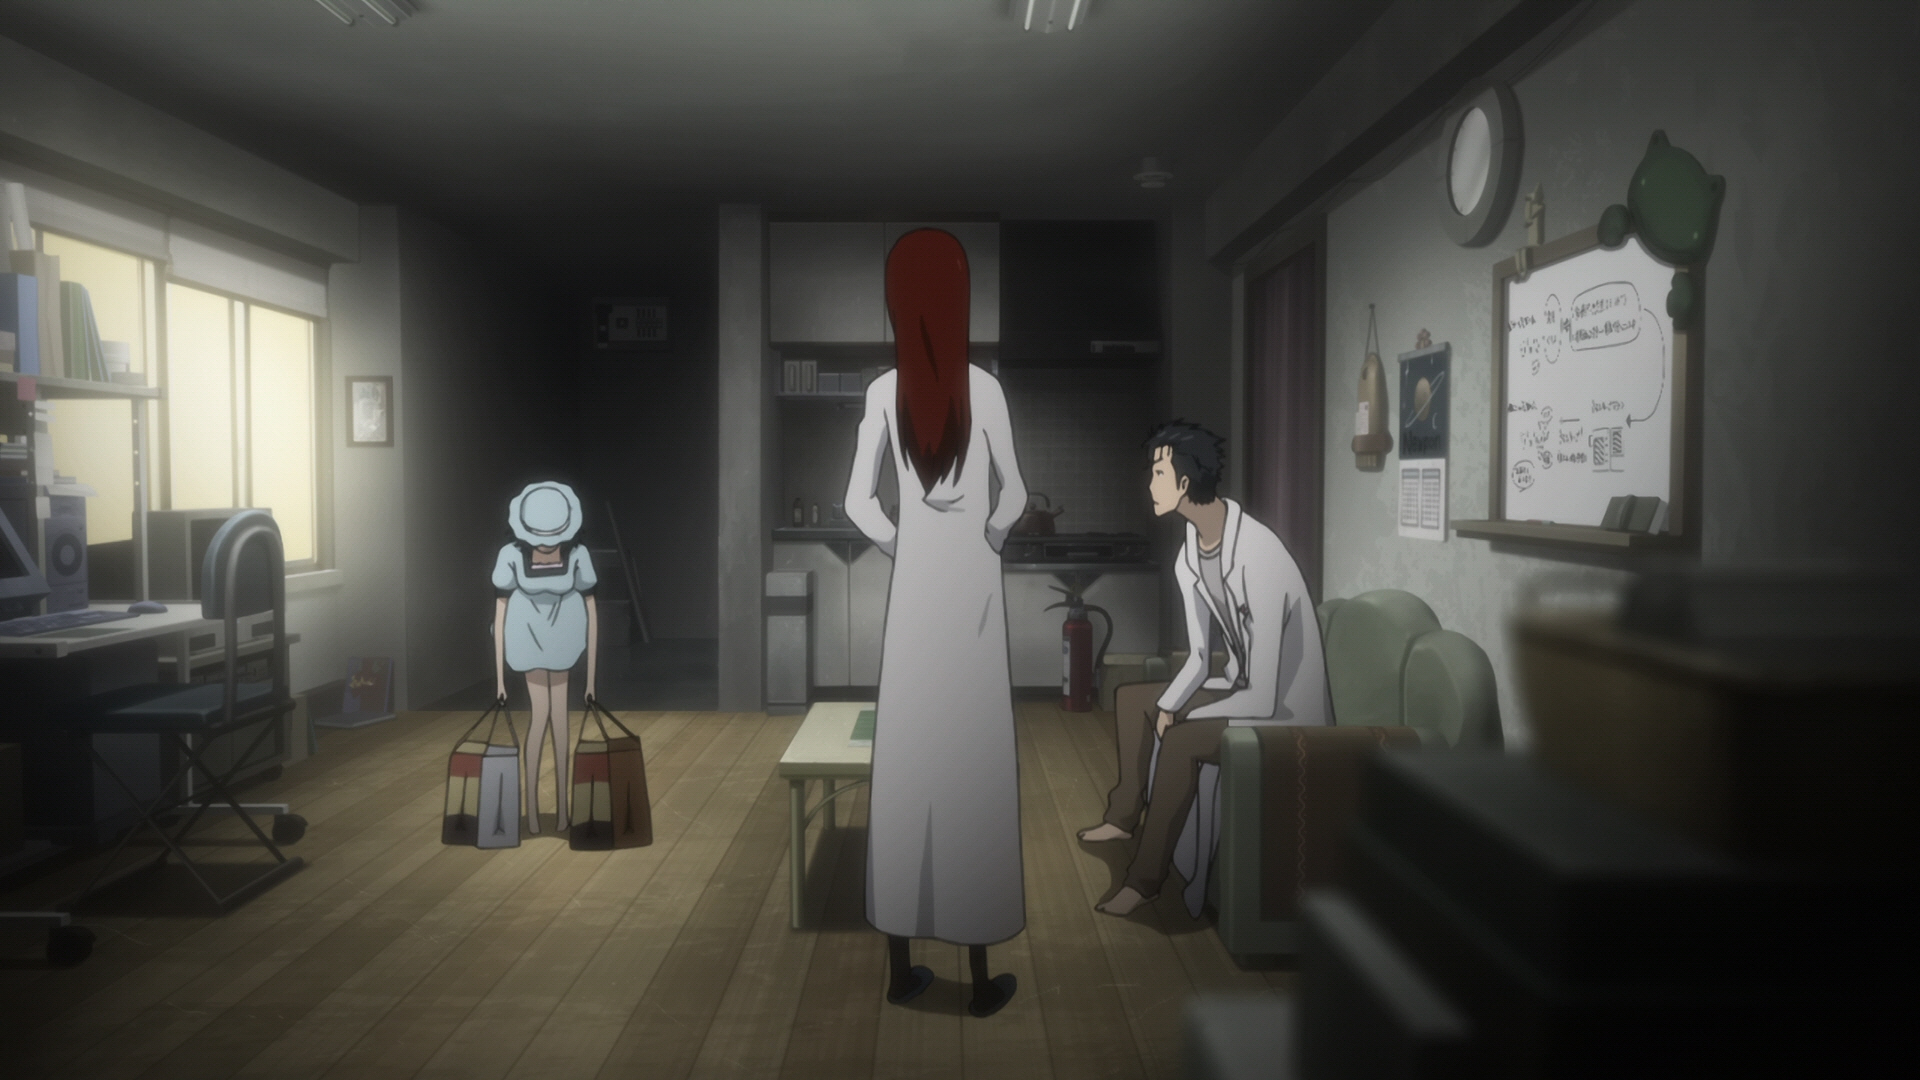 Steins Gate Episode 11 Dogma in Event Horizon 16